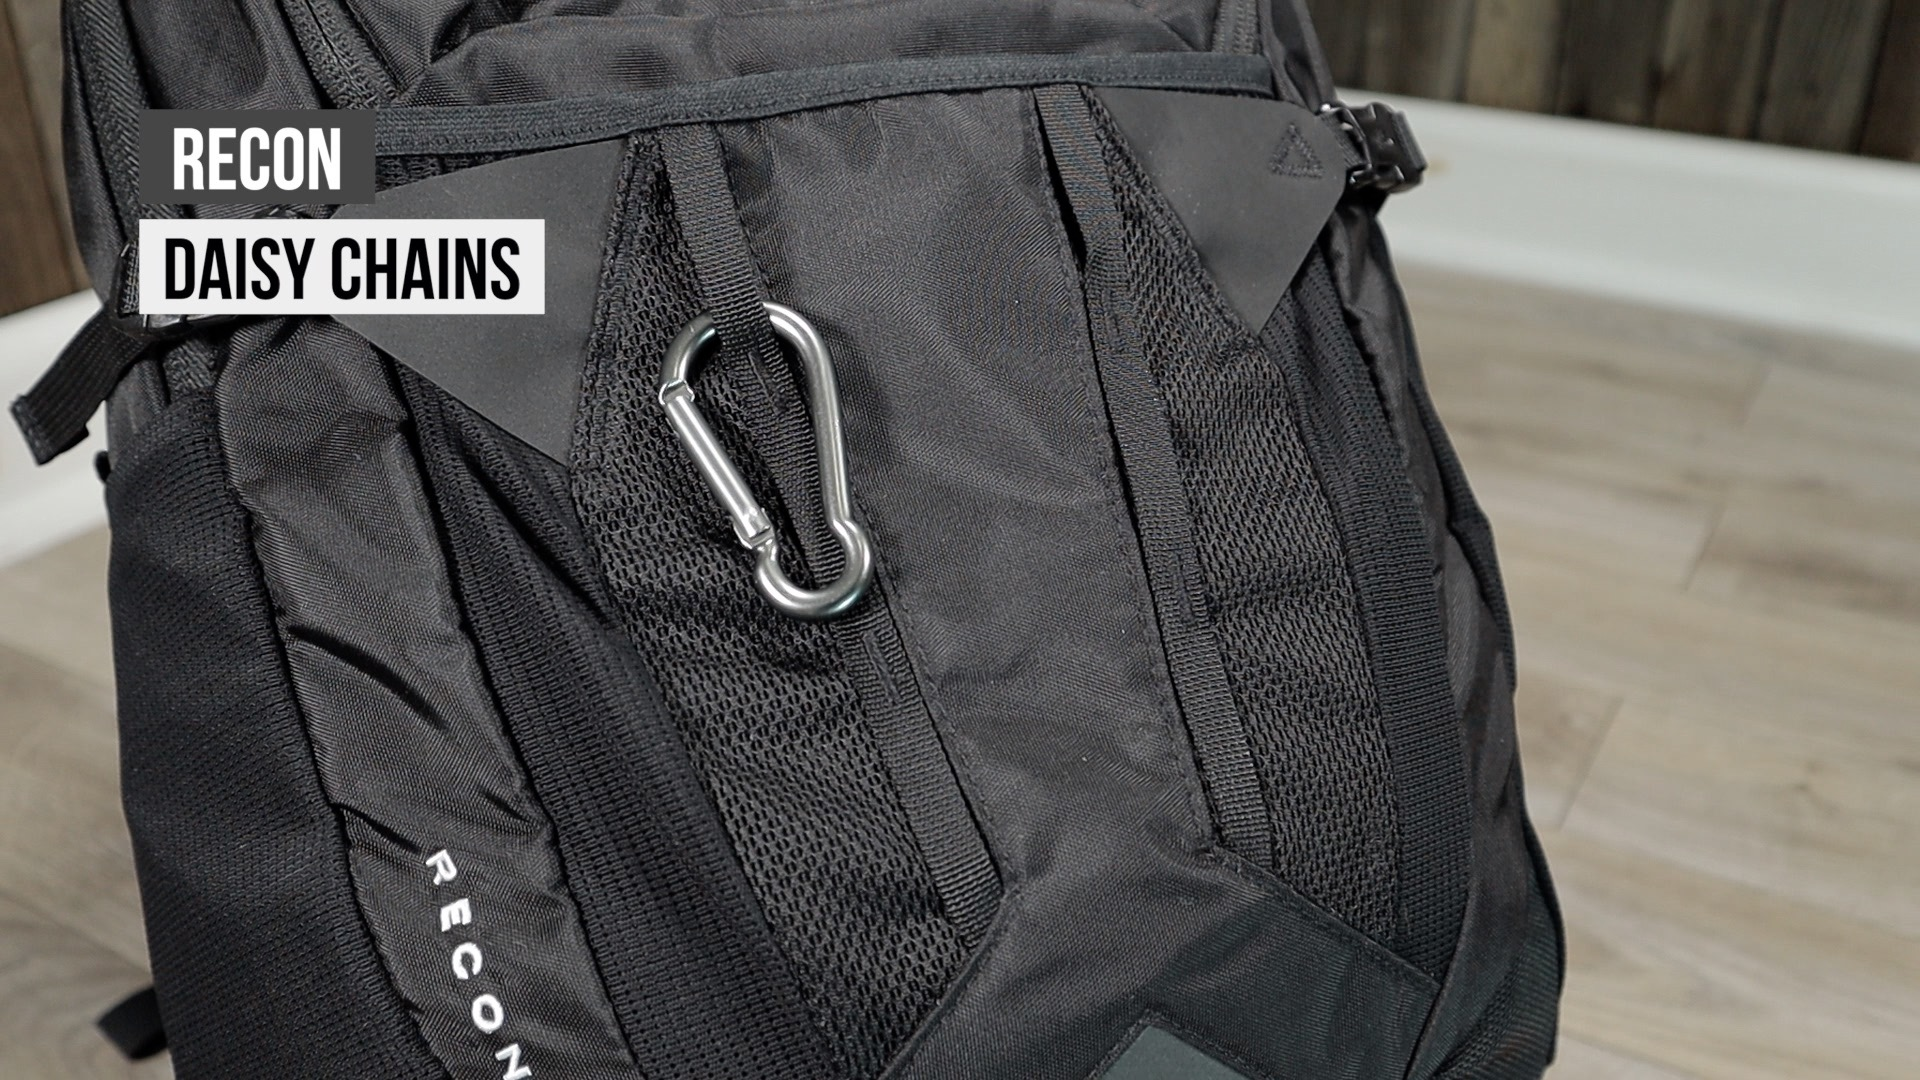 North Face Recon backpack daisy chains